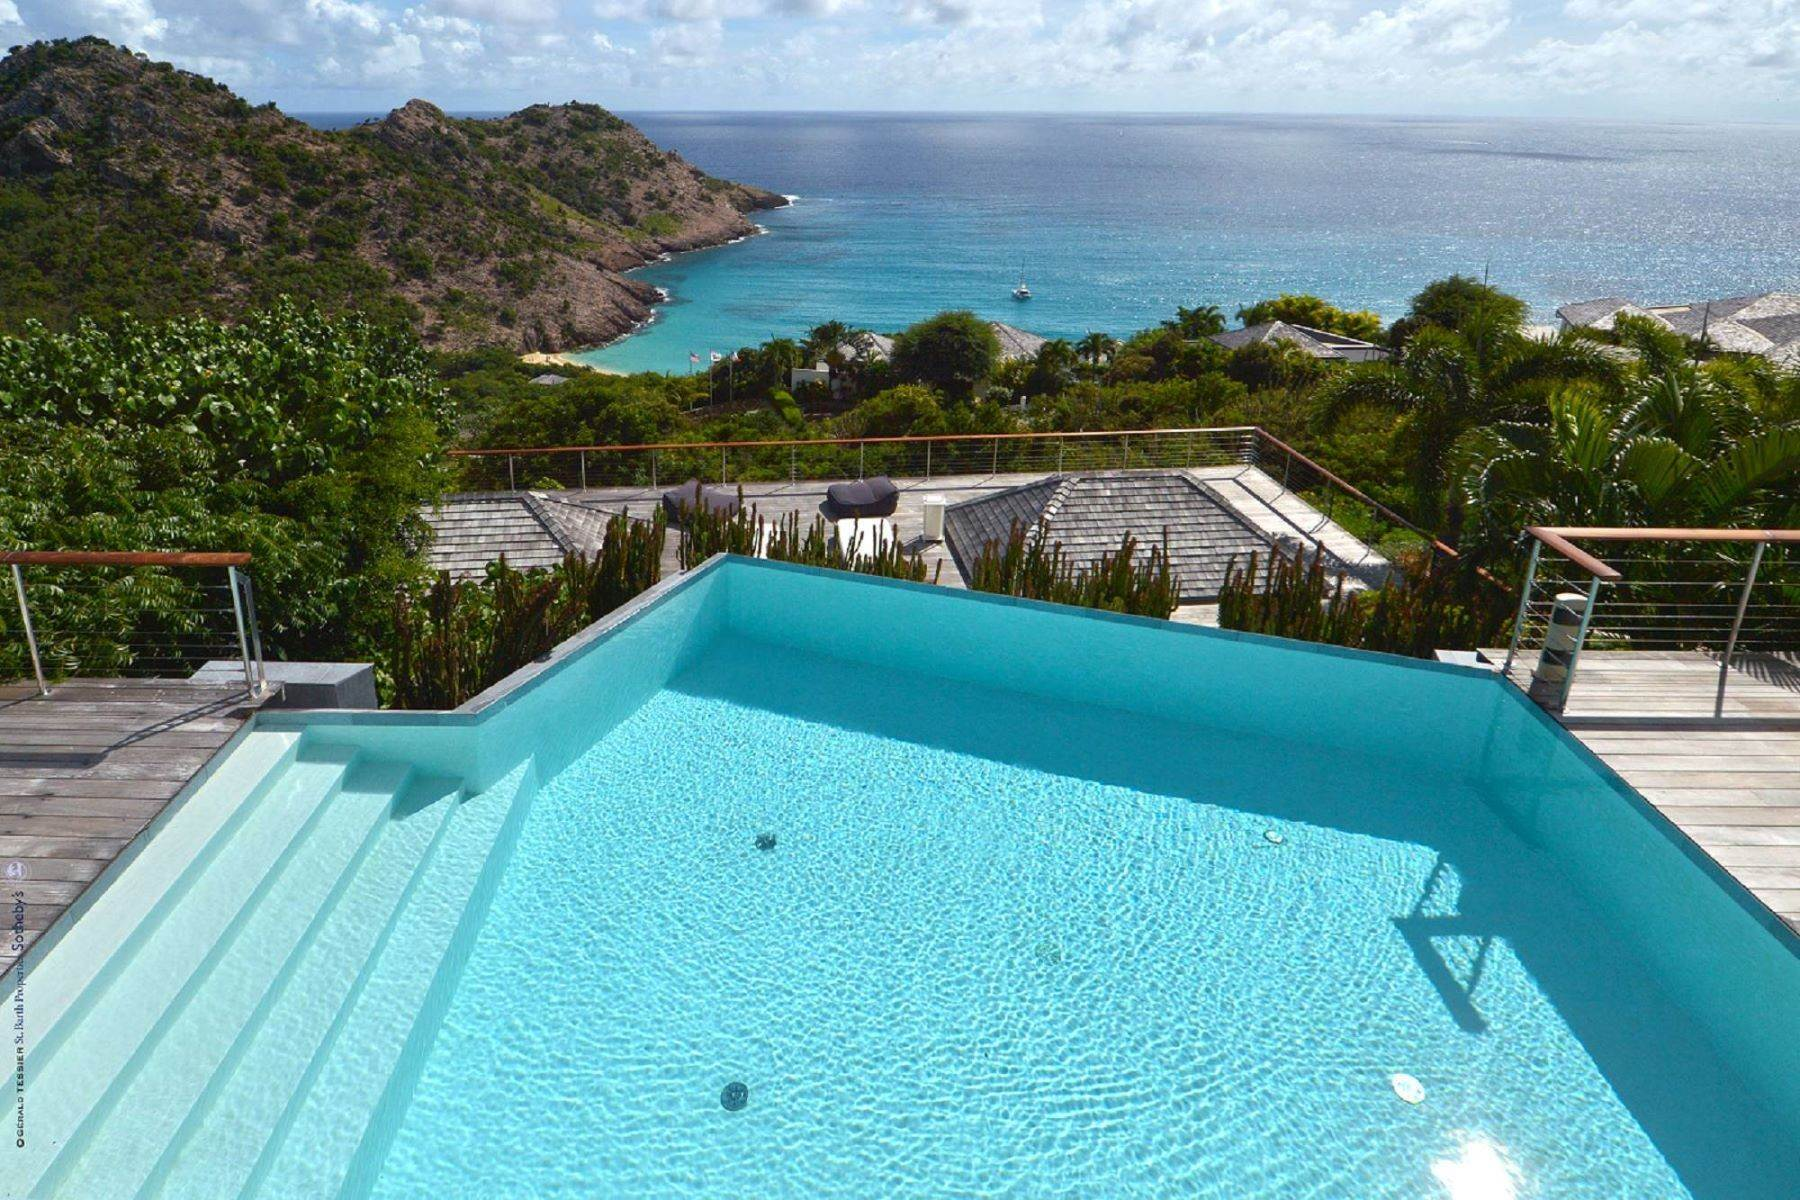 Single Family Homes for Sale at Villa Blue Dragon Other St. Barthelemy, Cities In St. Barthelemy St. Barthelemy